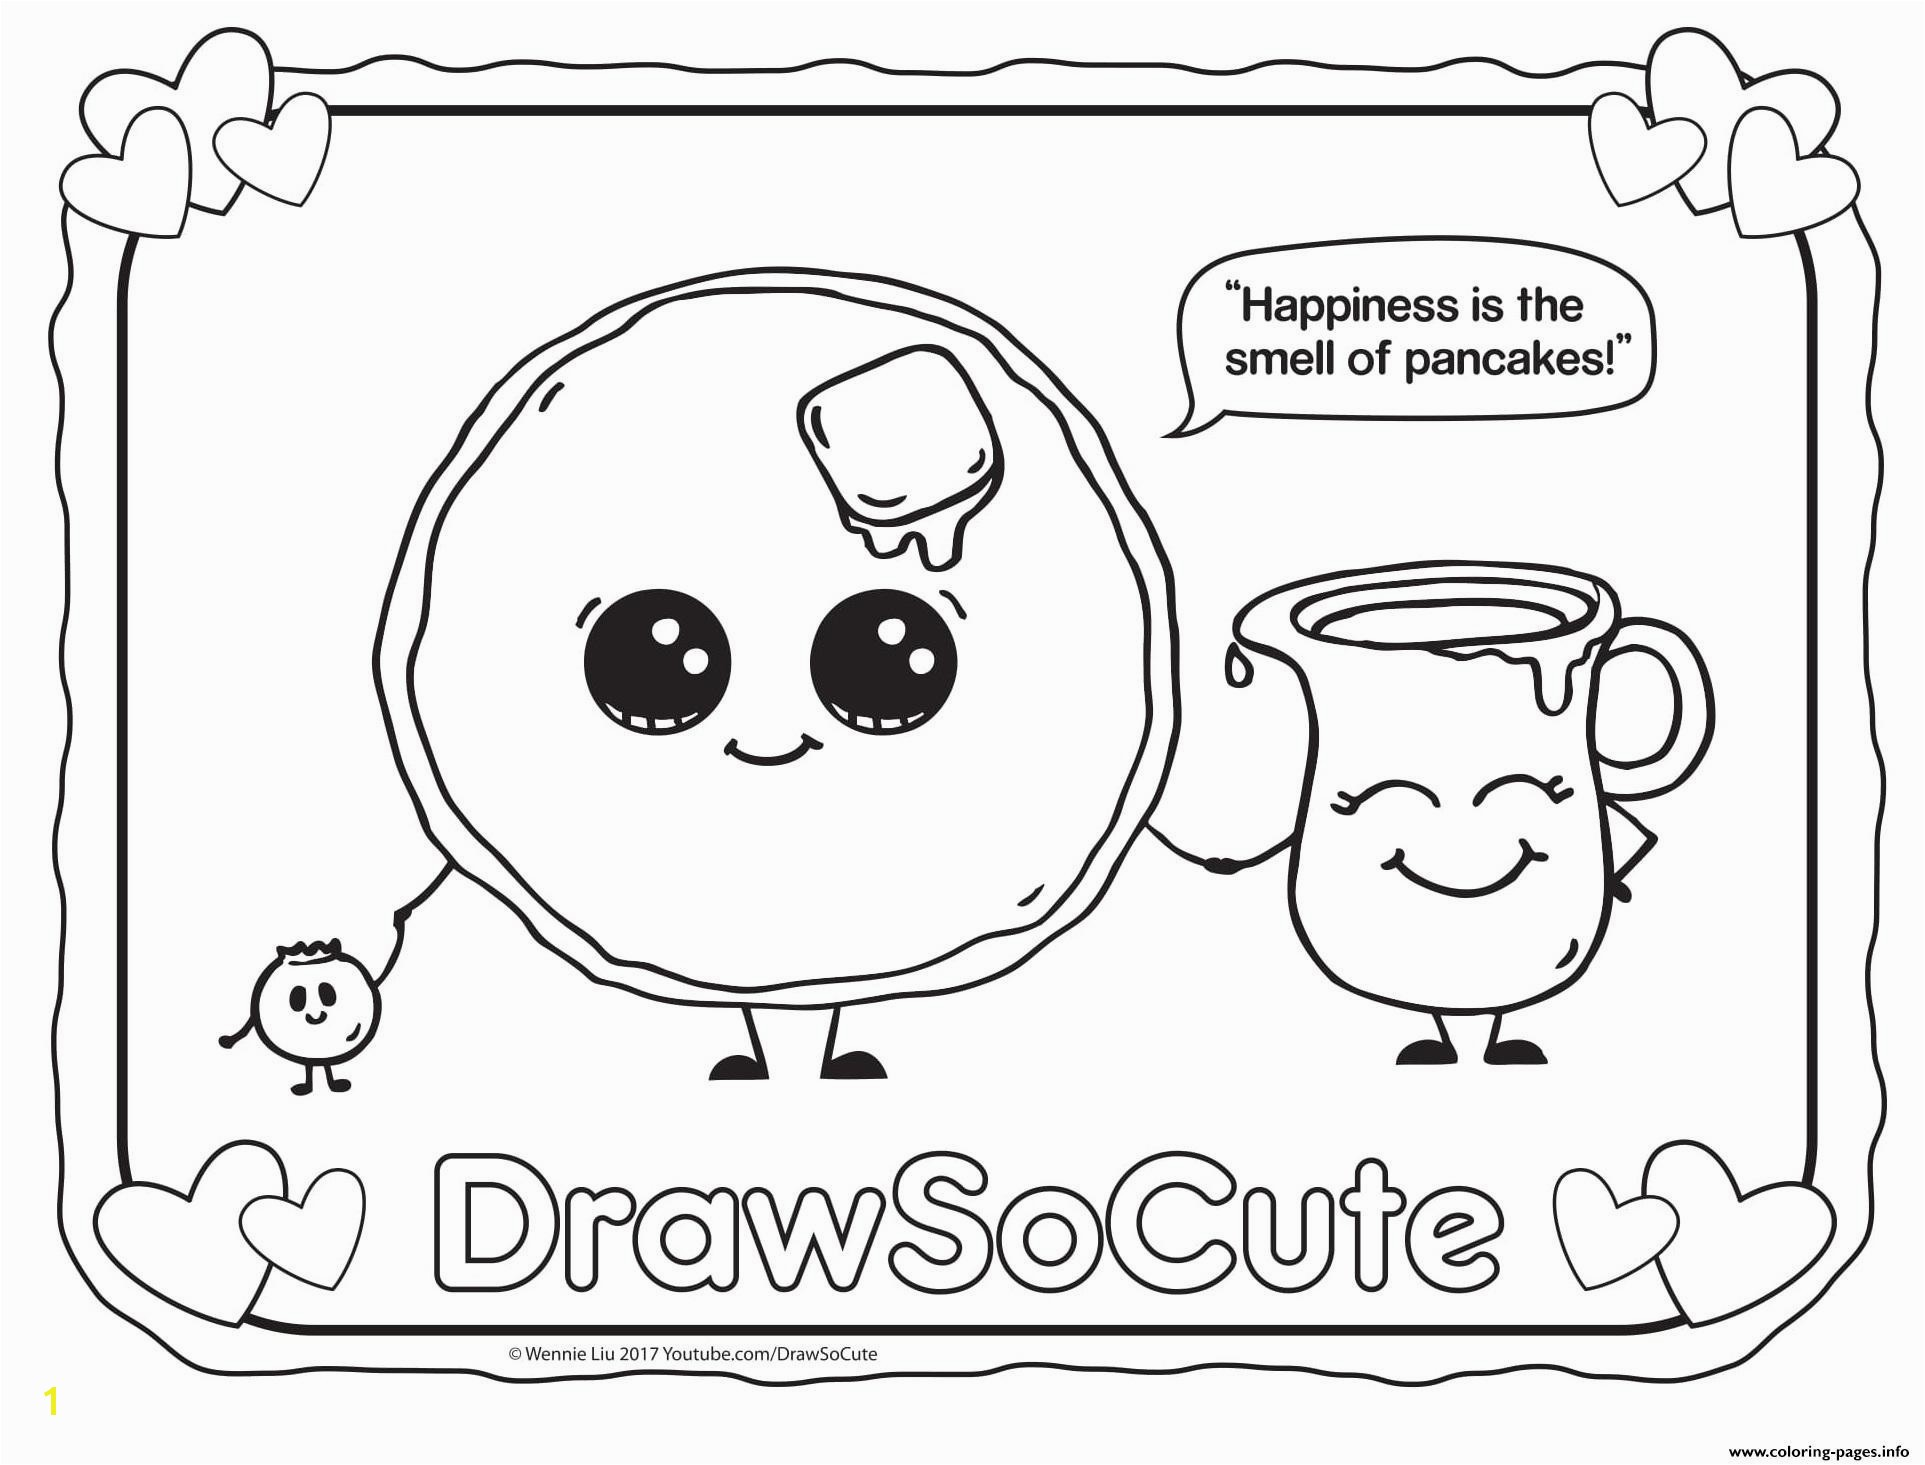 Www Coloring Pages New Coloring Pages Drawings Fresh S Cute Drawing Coloring Pages Drawing